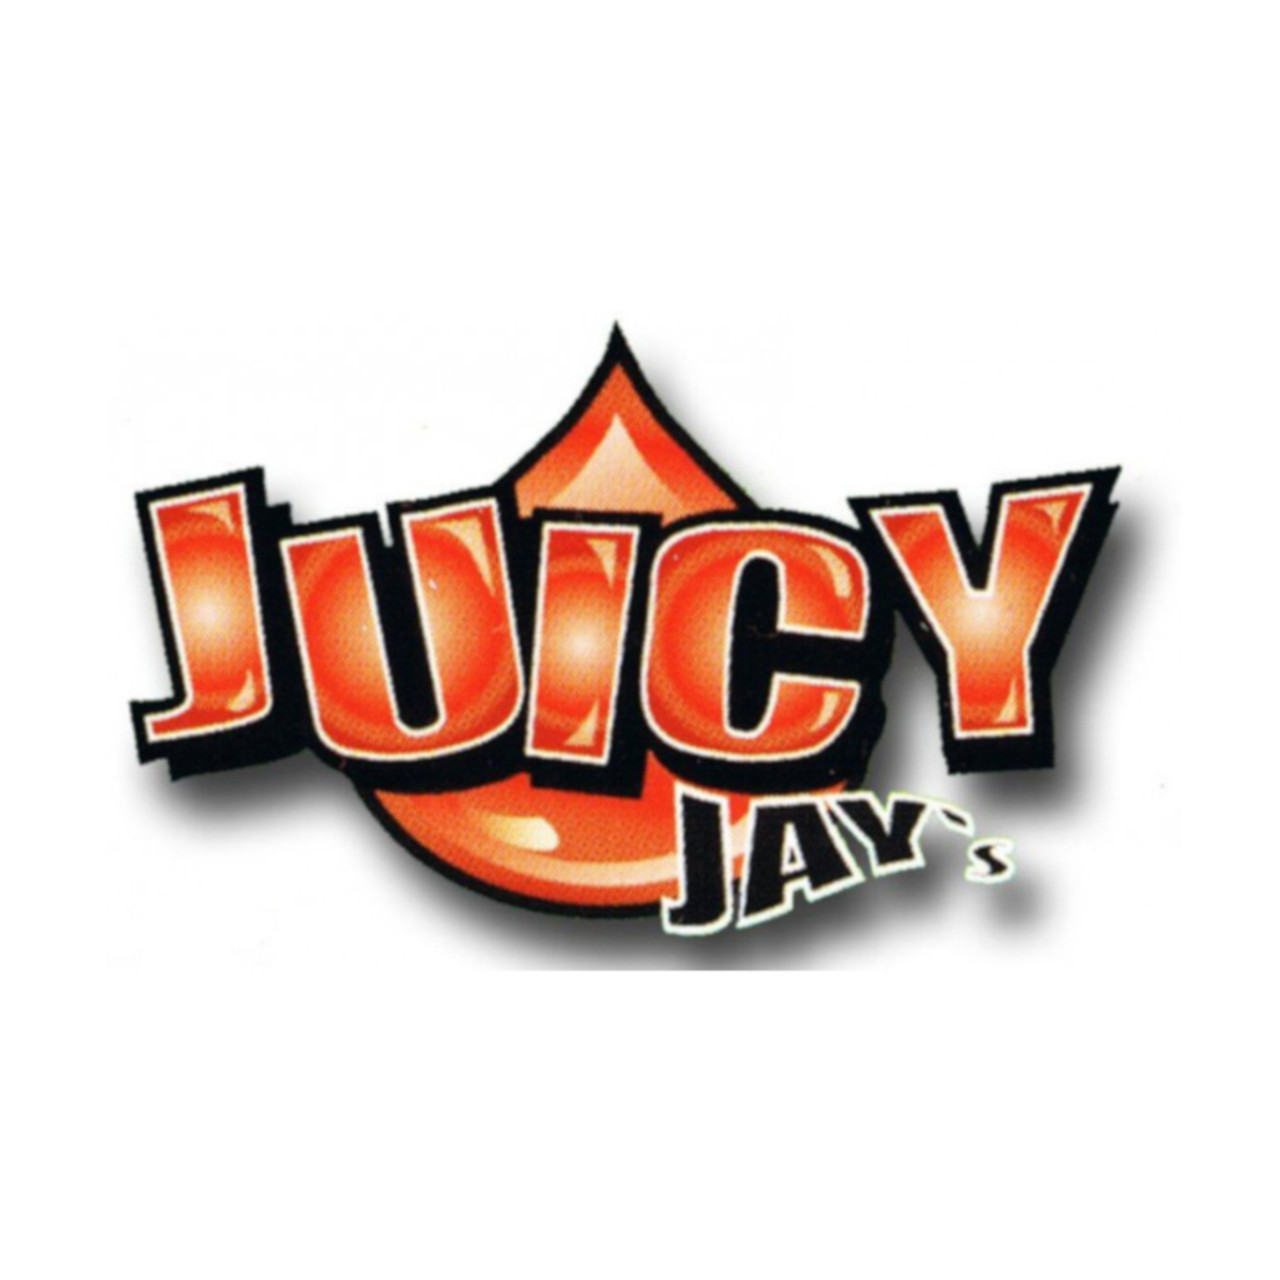 Juicy Jay's  Flavored Hemp Rolling Papers Logo